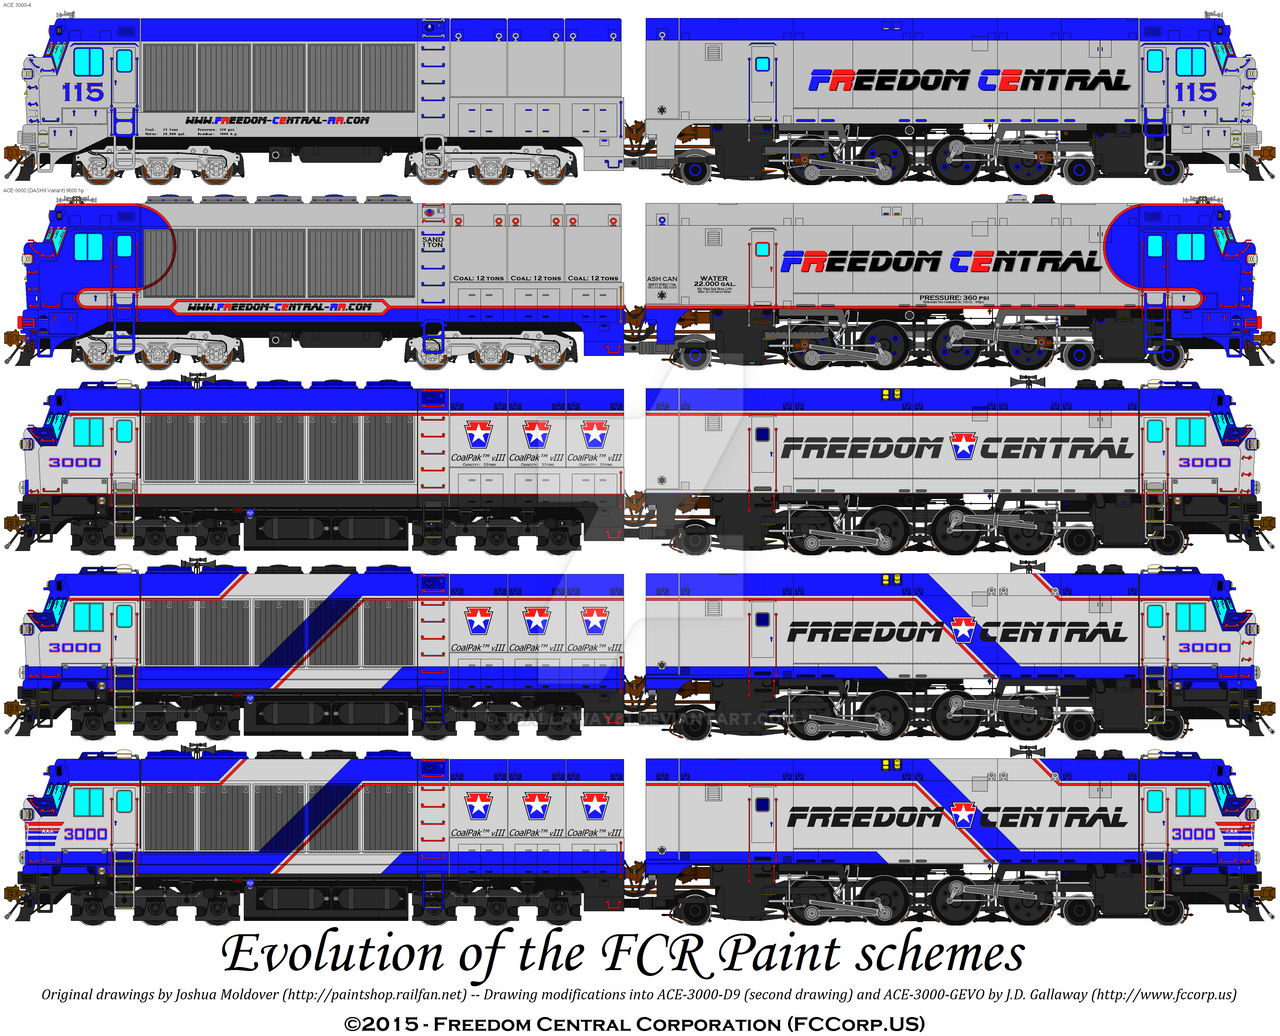 FCCorp.US Paint Evolution on the ACE-3000's